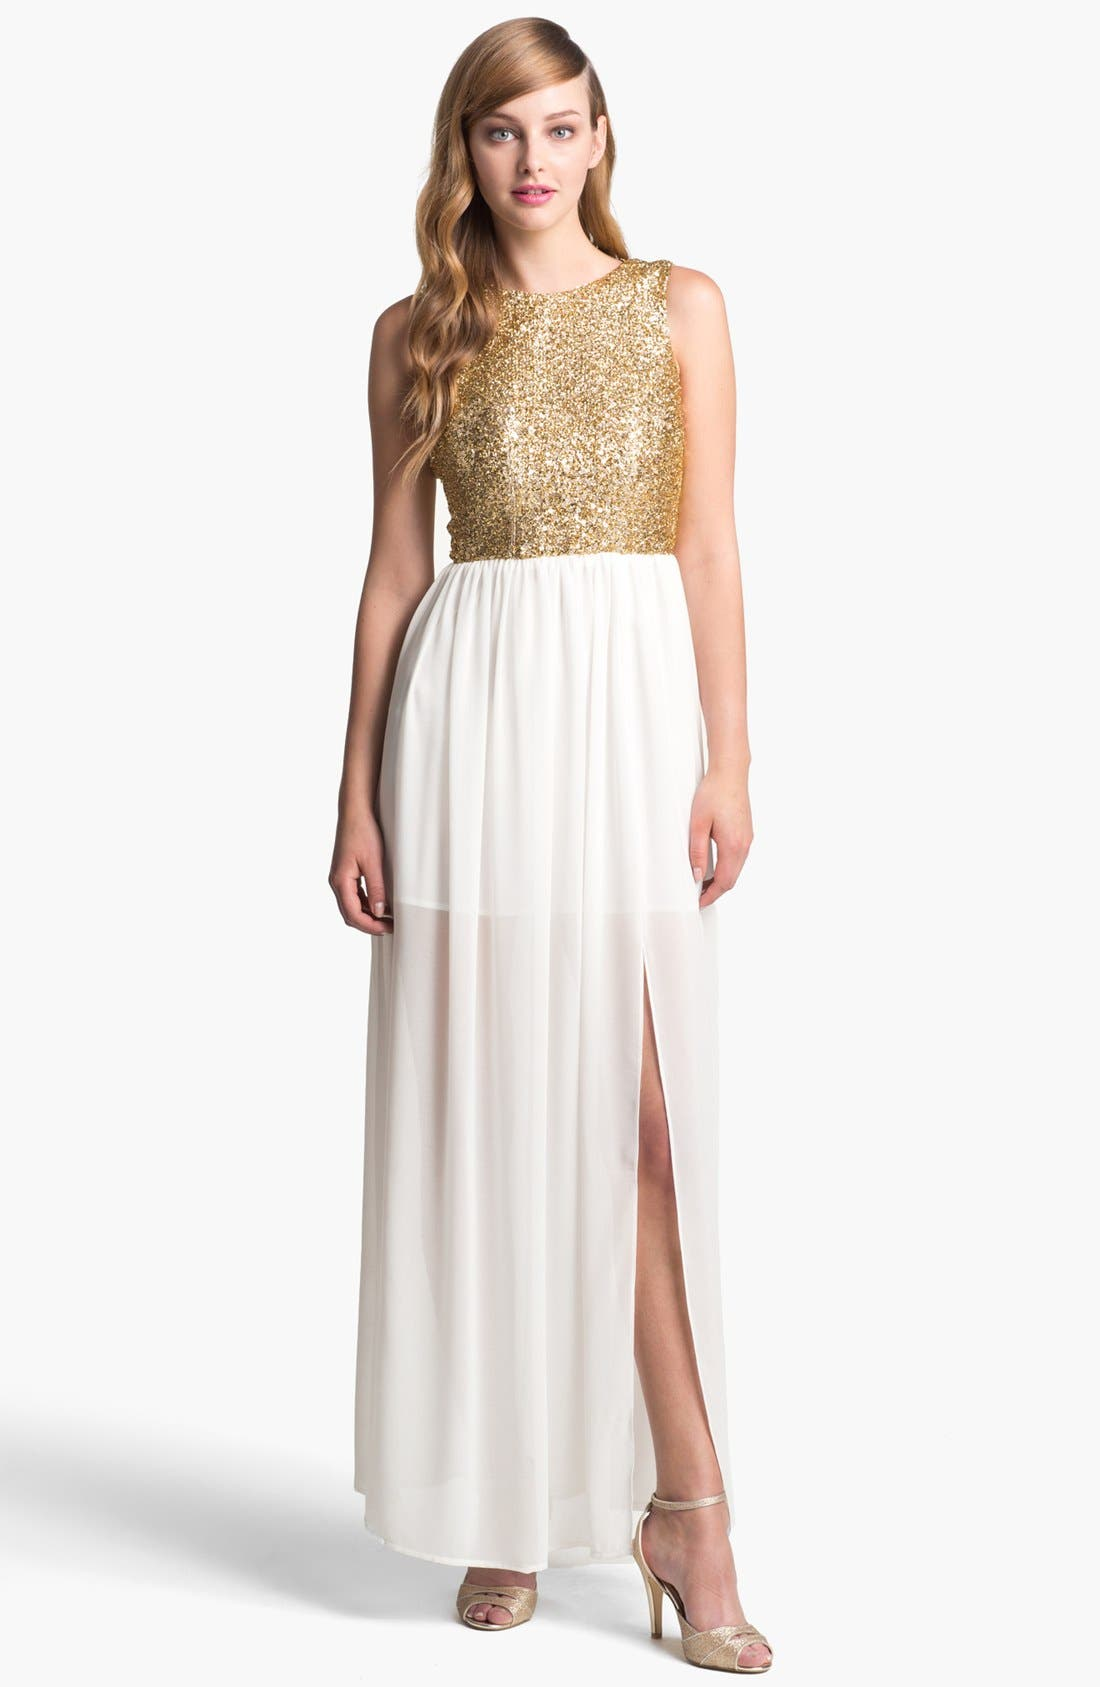 Alternate Image 1 Selected - Keepsake the Label 'Love Run By' Embellished Chiffon Maxi Dress